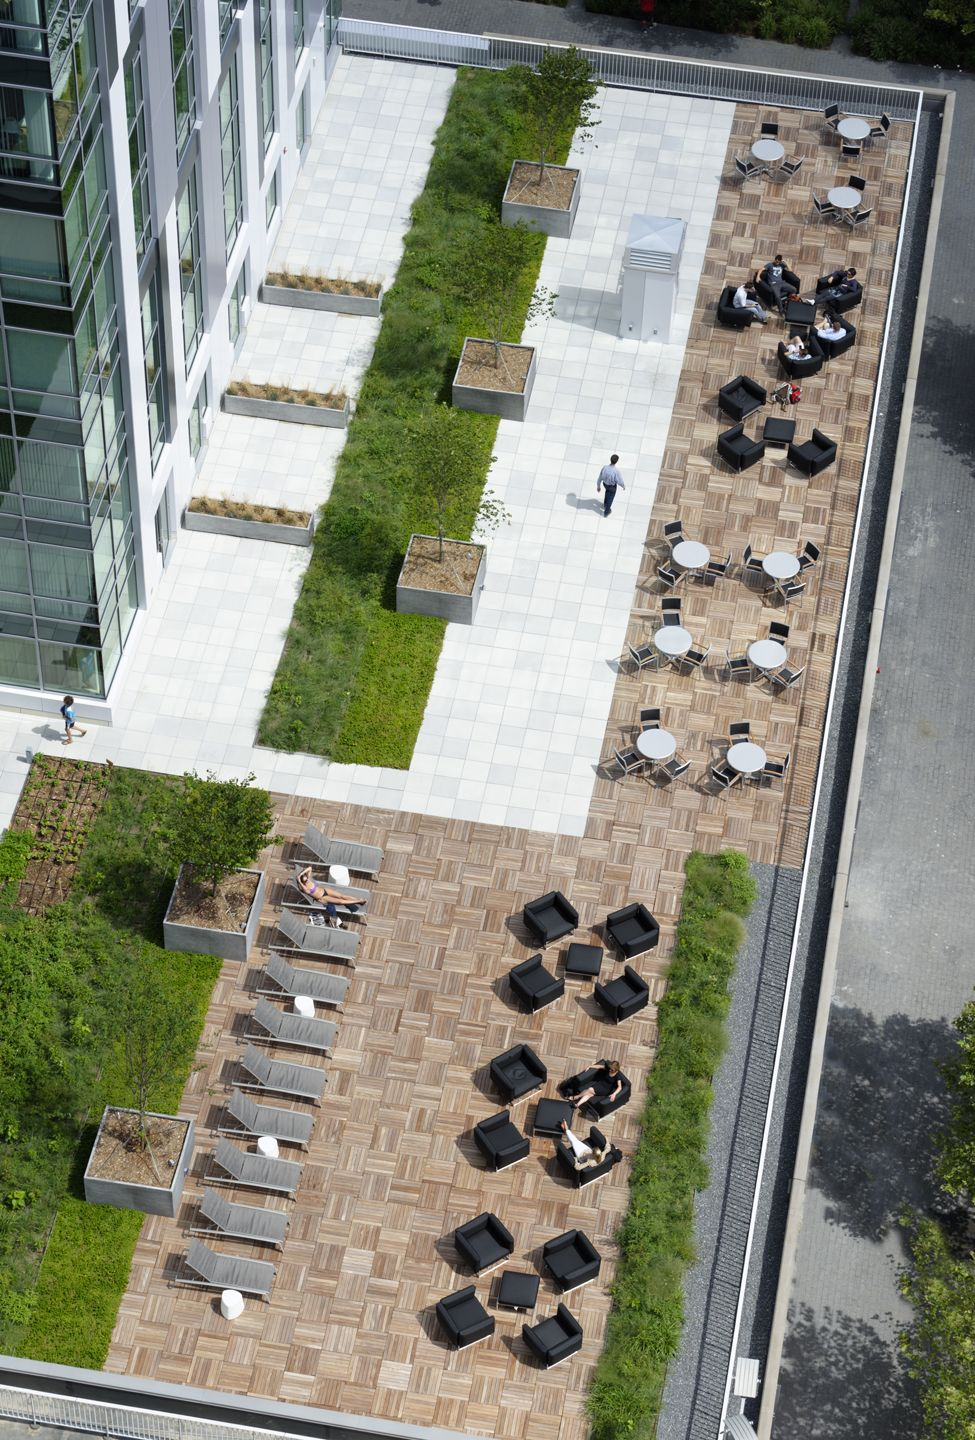 Roof Deck At Watermark Kendall East By Jacqueline Mcgee Hospitalitydesign Roofdeck Outdoorliving Watermark In 2020 Roof Landscape Rooftop Design Roof Garden